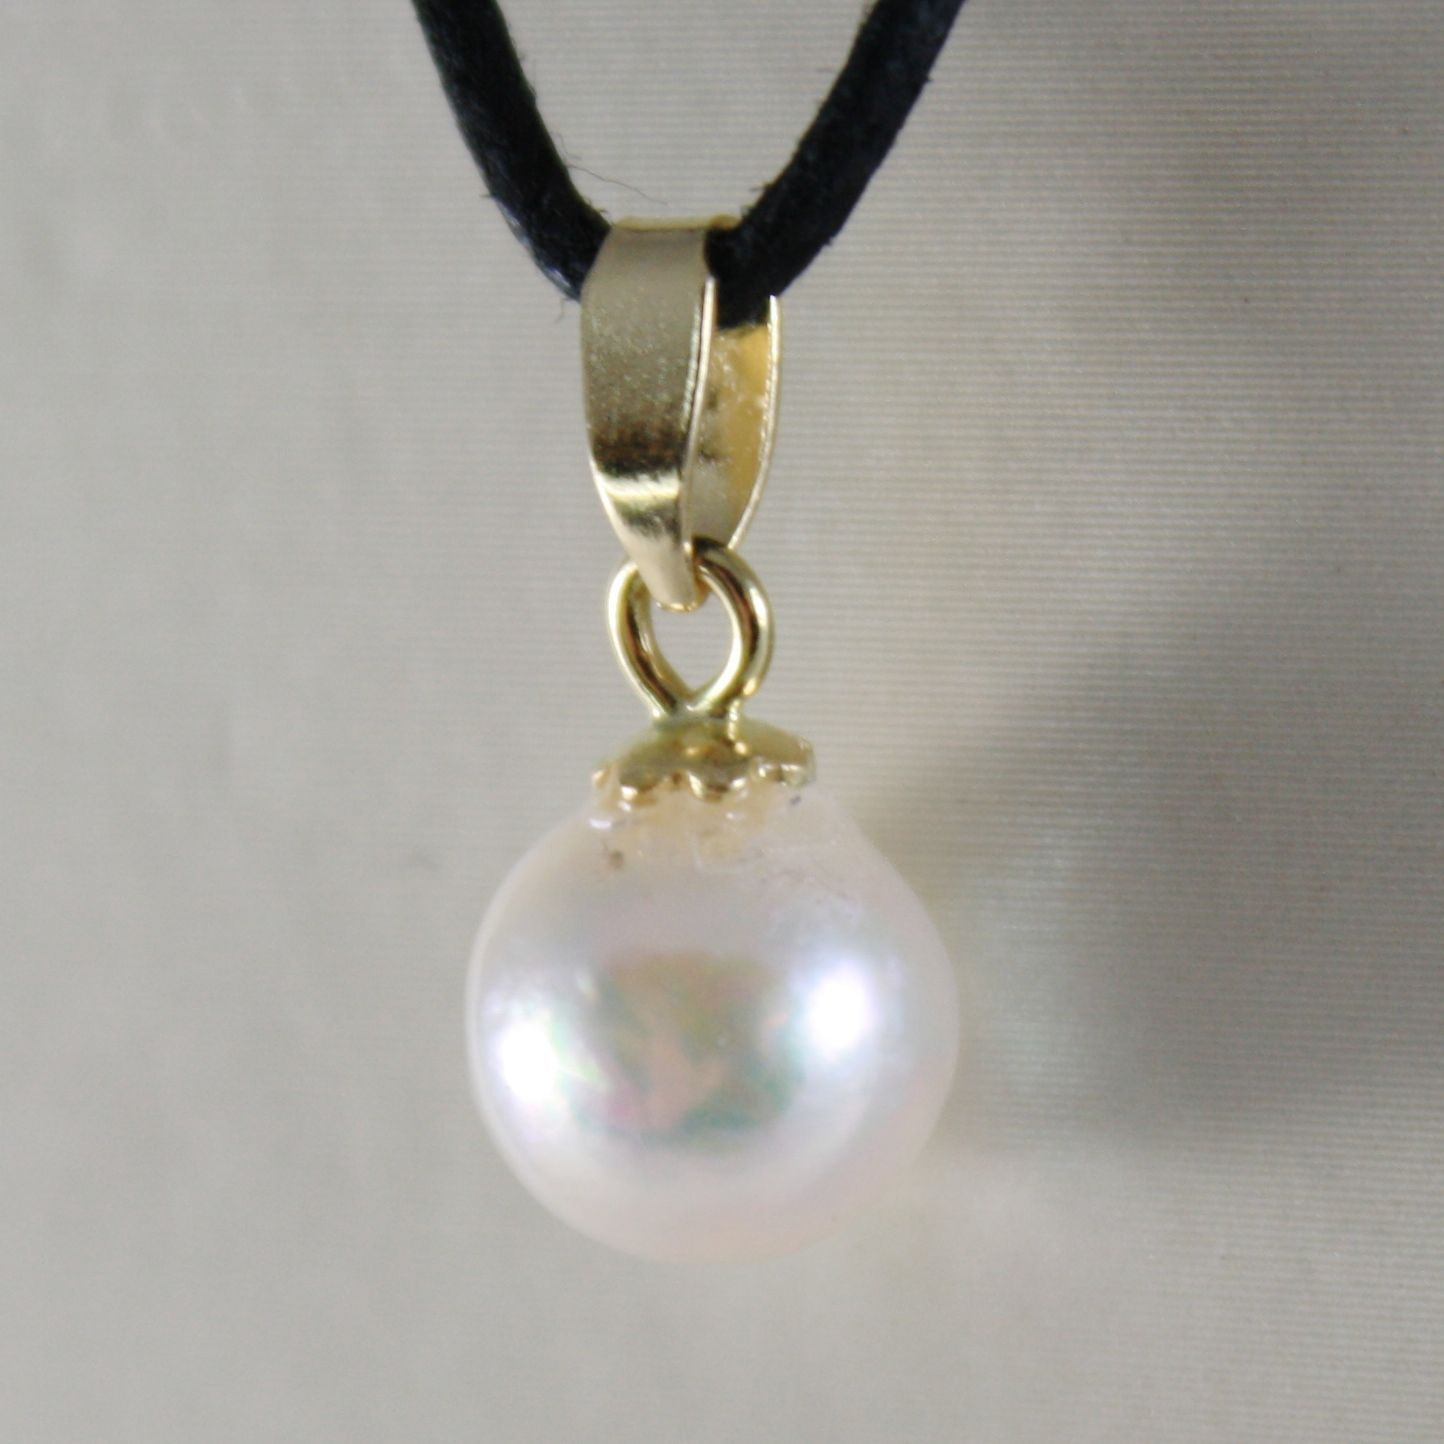 18K YELLOW GOLD PENDANT CHARM WITH ROUND AKOYA WHITE PEARL 7 MM, MADE IN ITALY